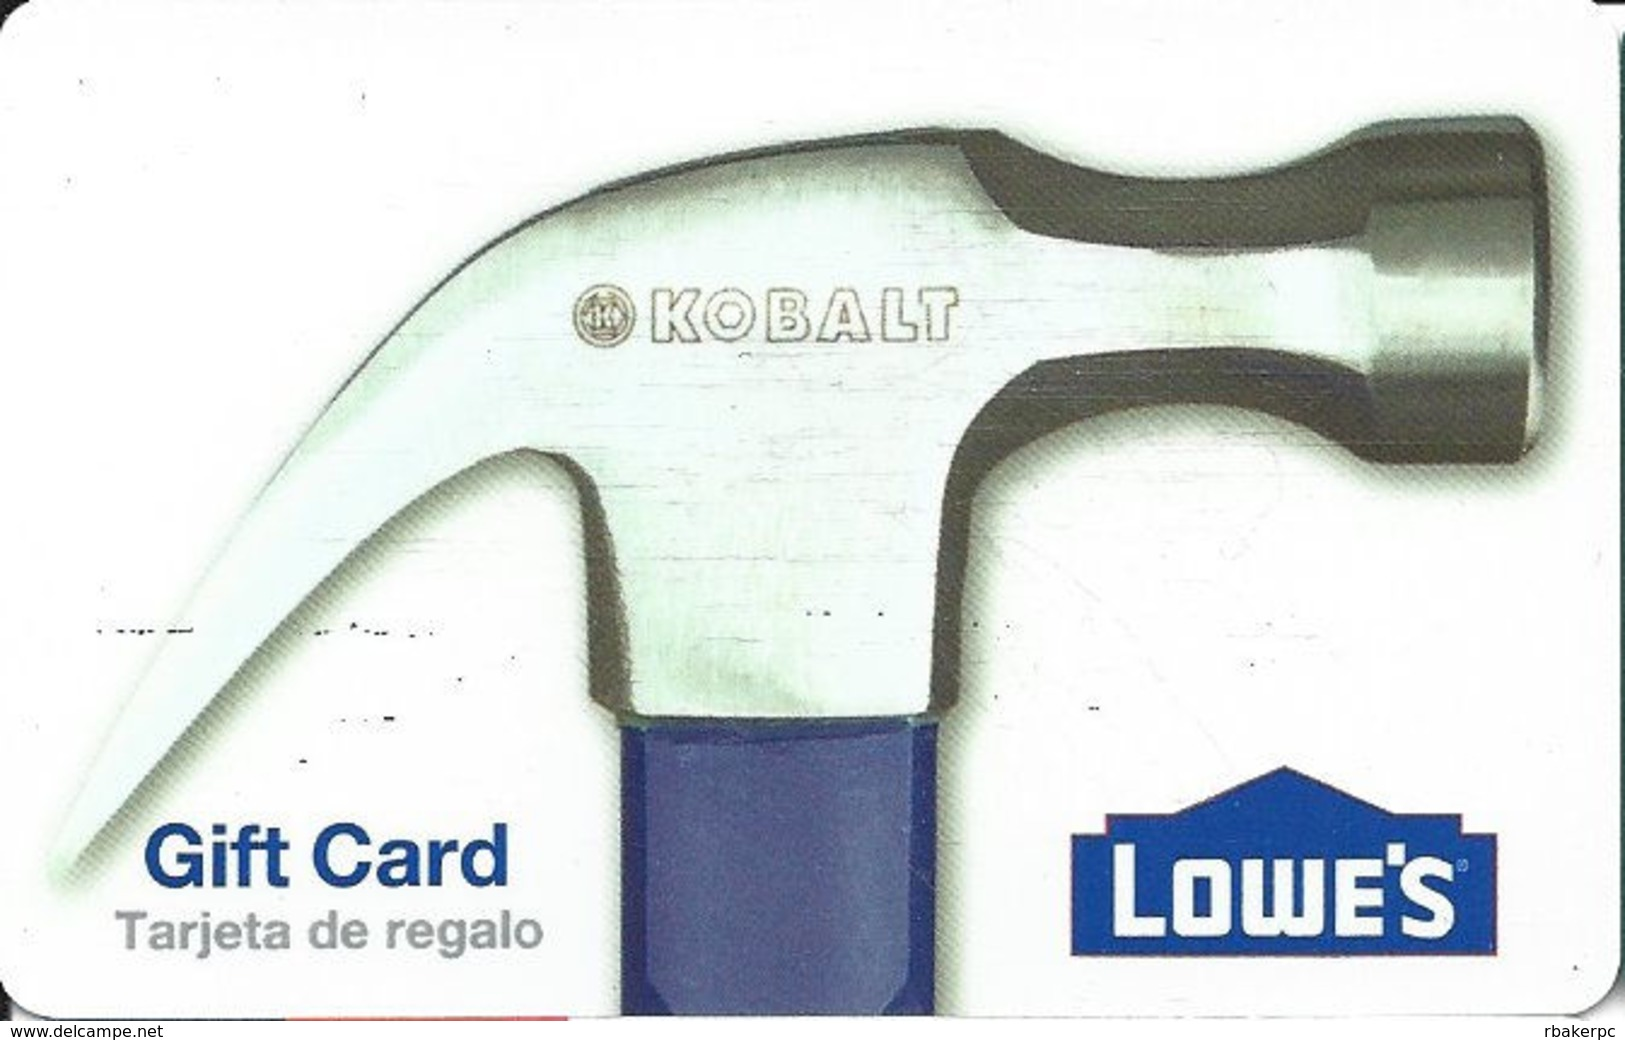 Lowes Gift Card - Gift Cards